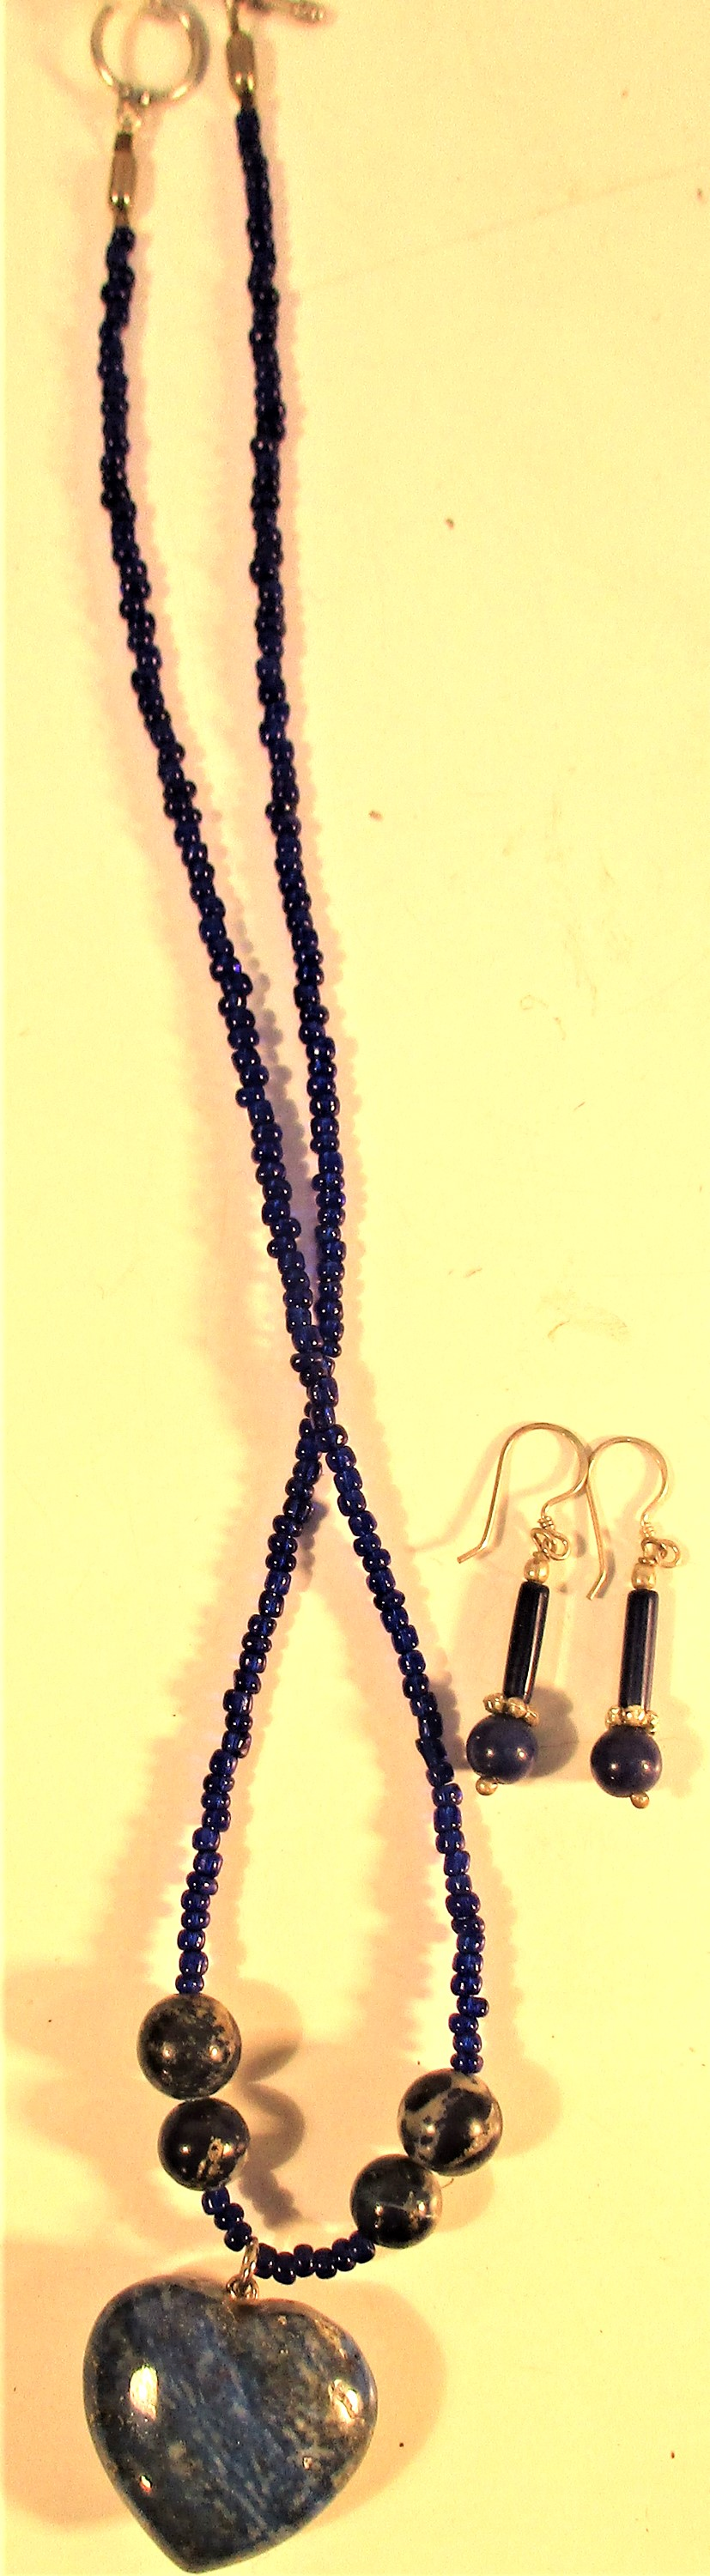 Lapis lazuli necklace with heart shaped pendant, black beads and pair of lapis stone earrings